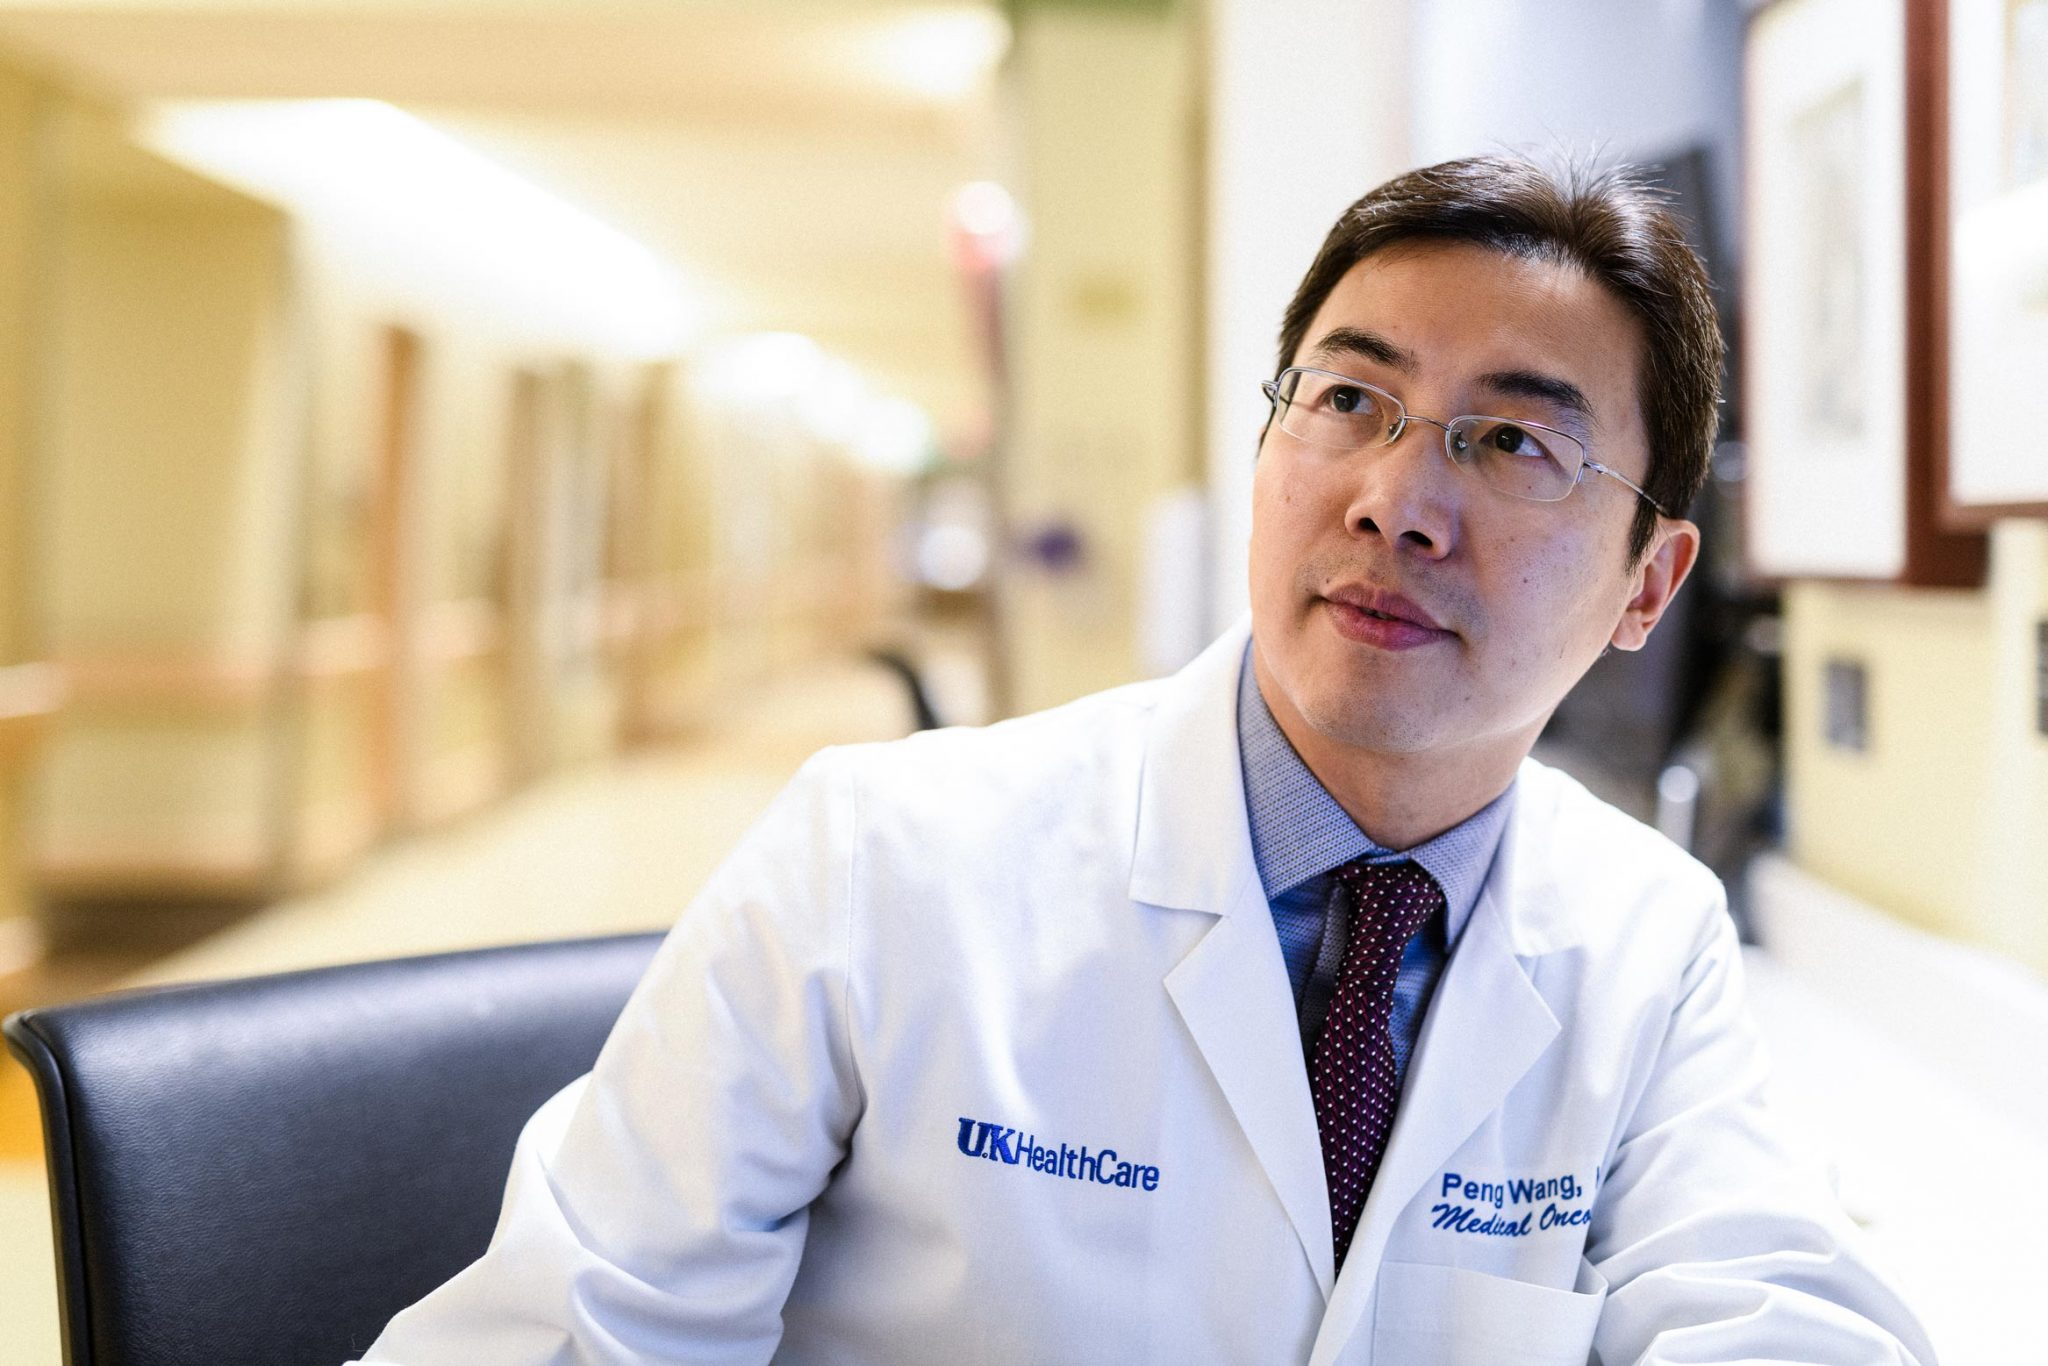 Portrait of UK HealthCare oncologist, Dr. Peng Wang.